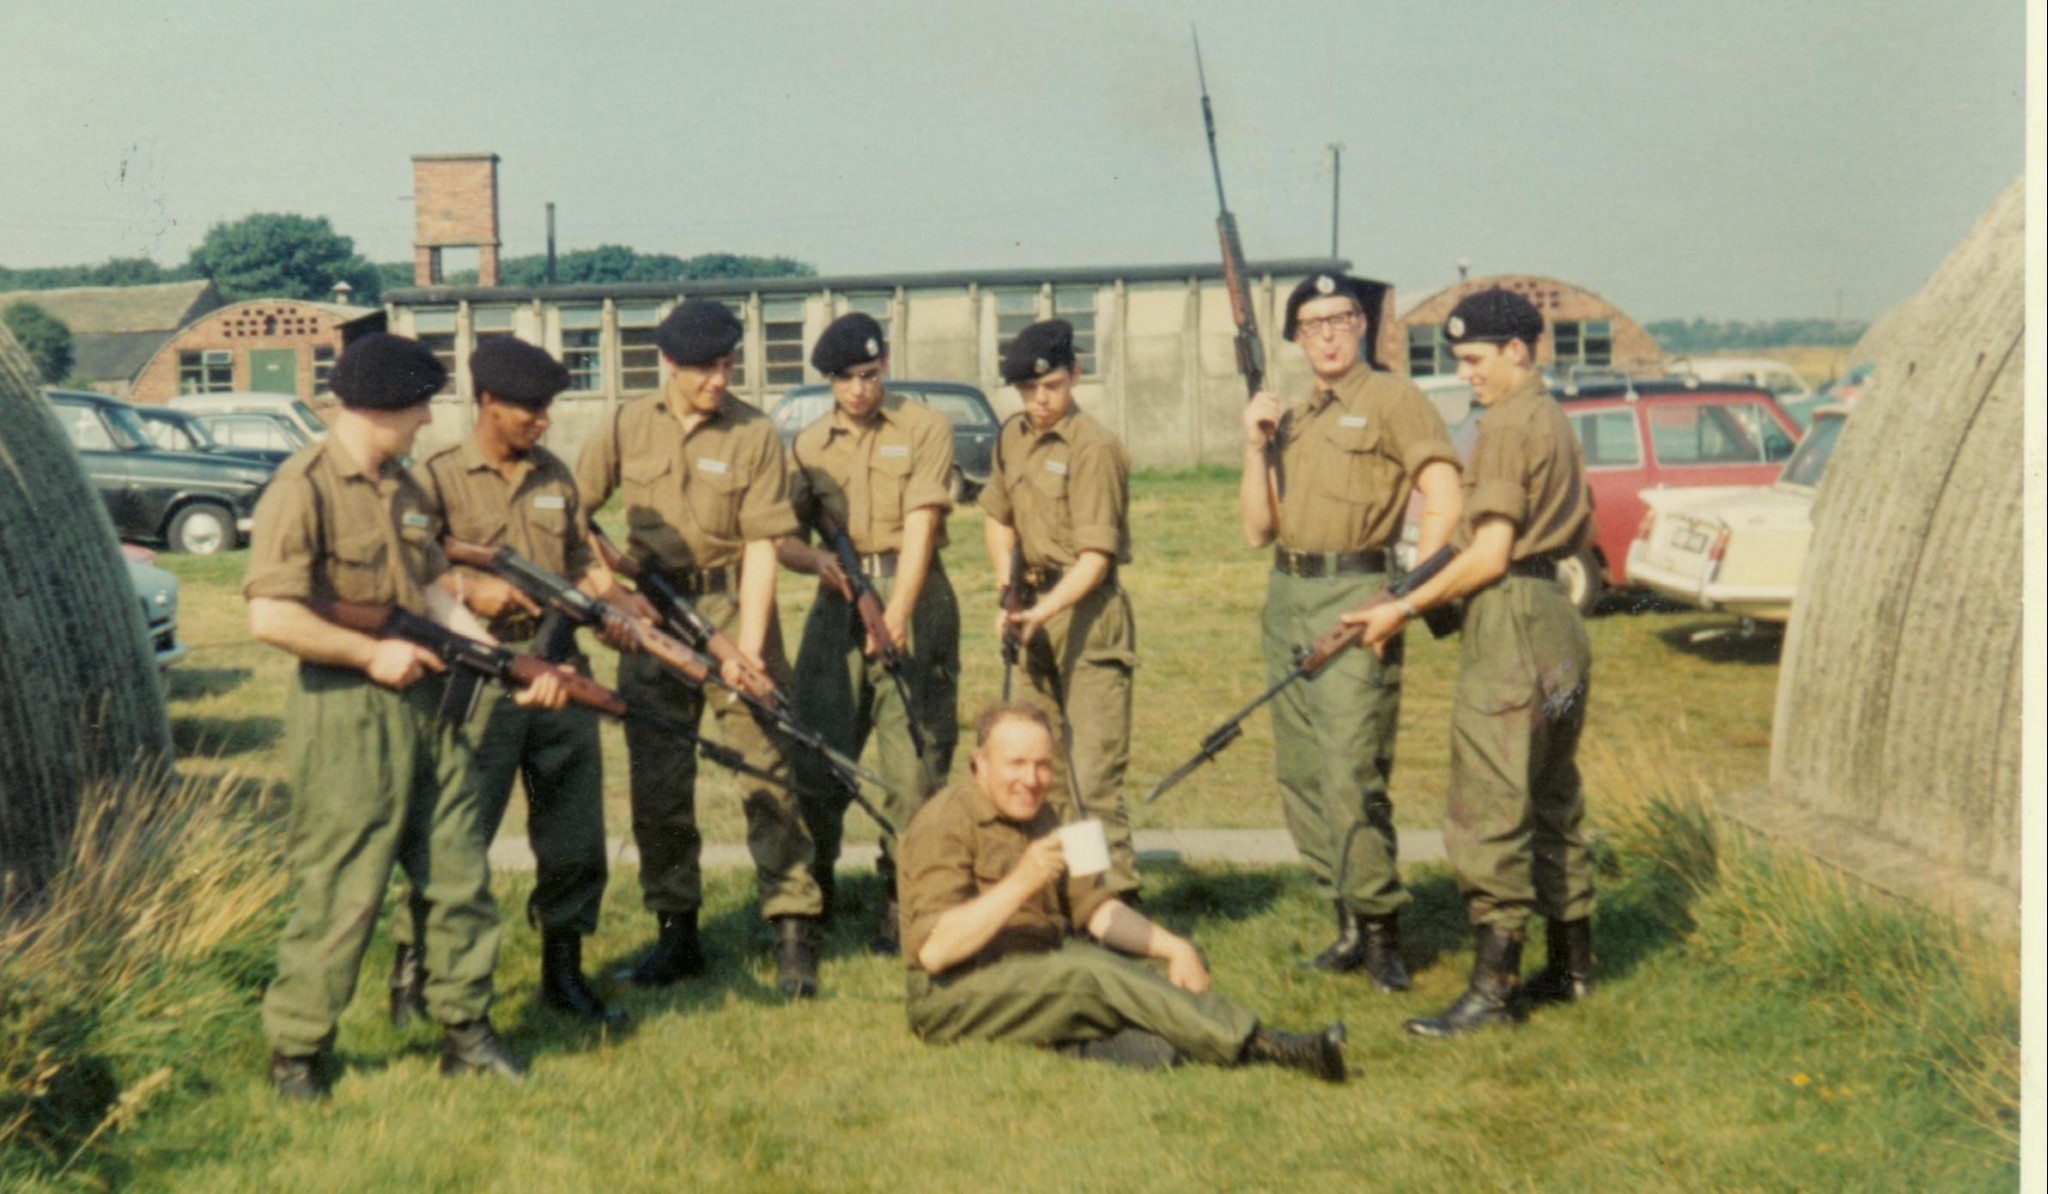 group with rifles